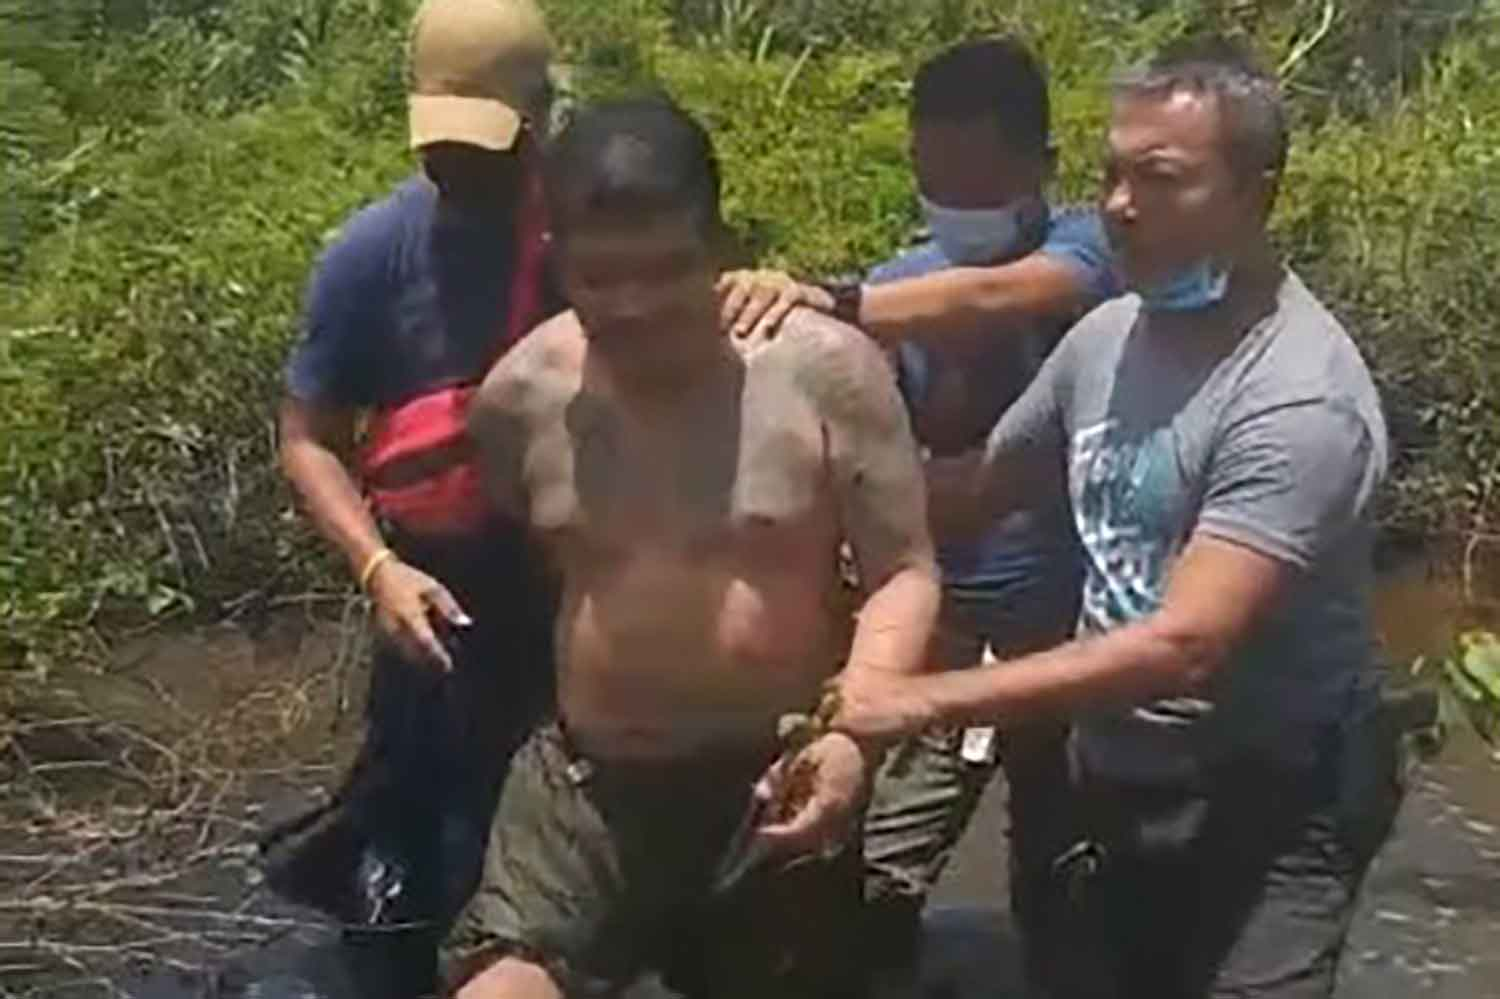 Drug fugitive Mongkol Sangchaeng is arrested in a swamp in Songkhla's Muang district on Wednesday, wanted over the seizure of a million meth pills and 10kg of crystal meth in Nakhon Si Thammarat on April 15. (Photo: Assawin Pakkawan)